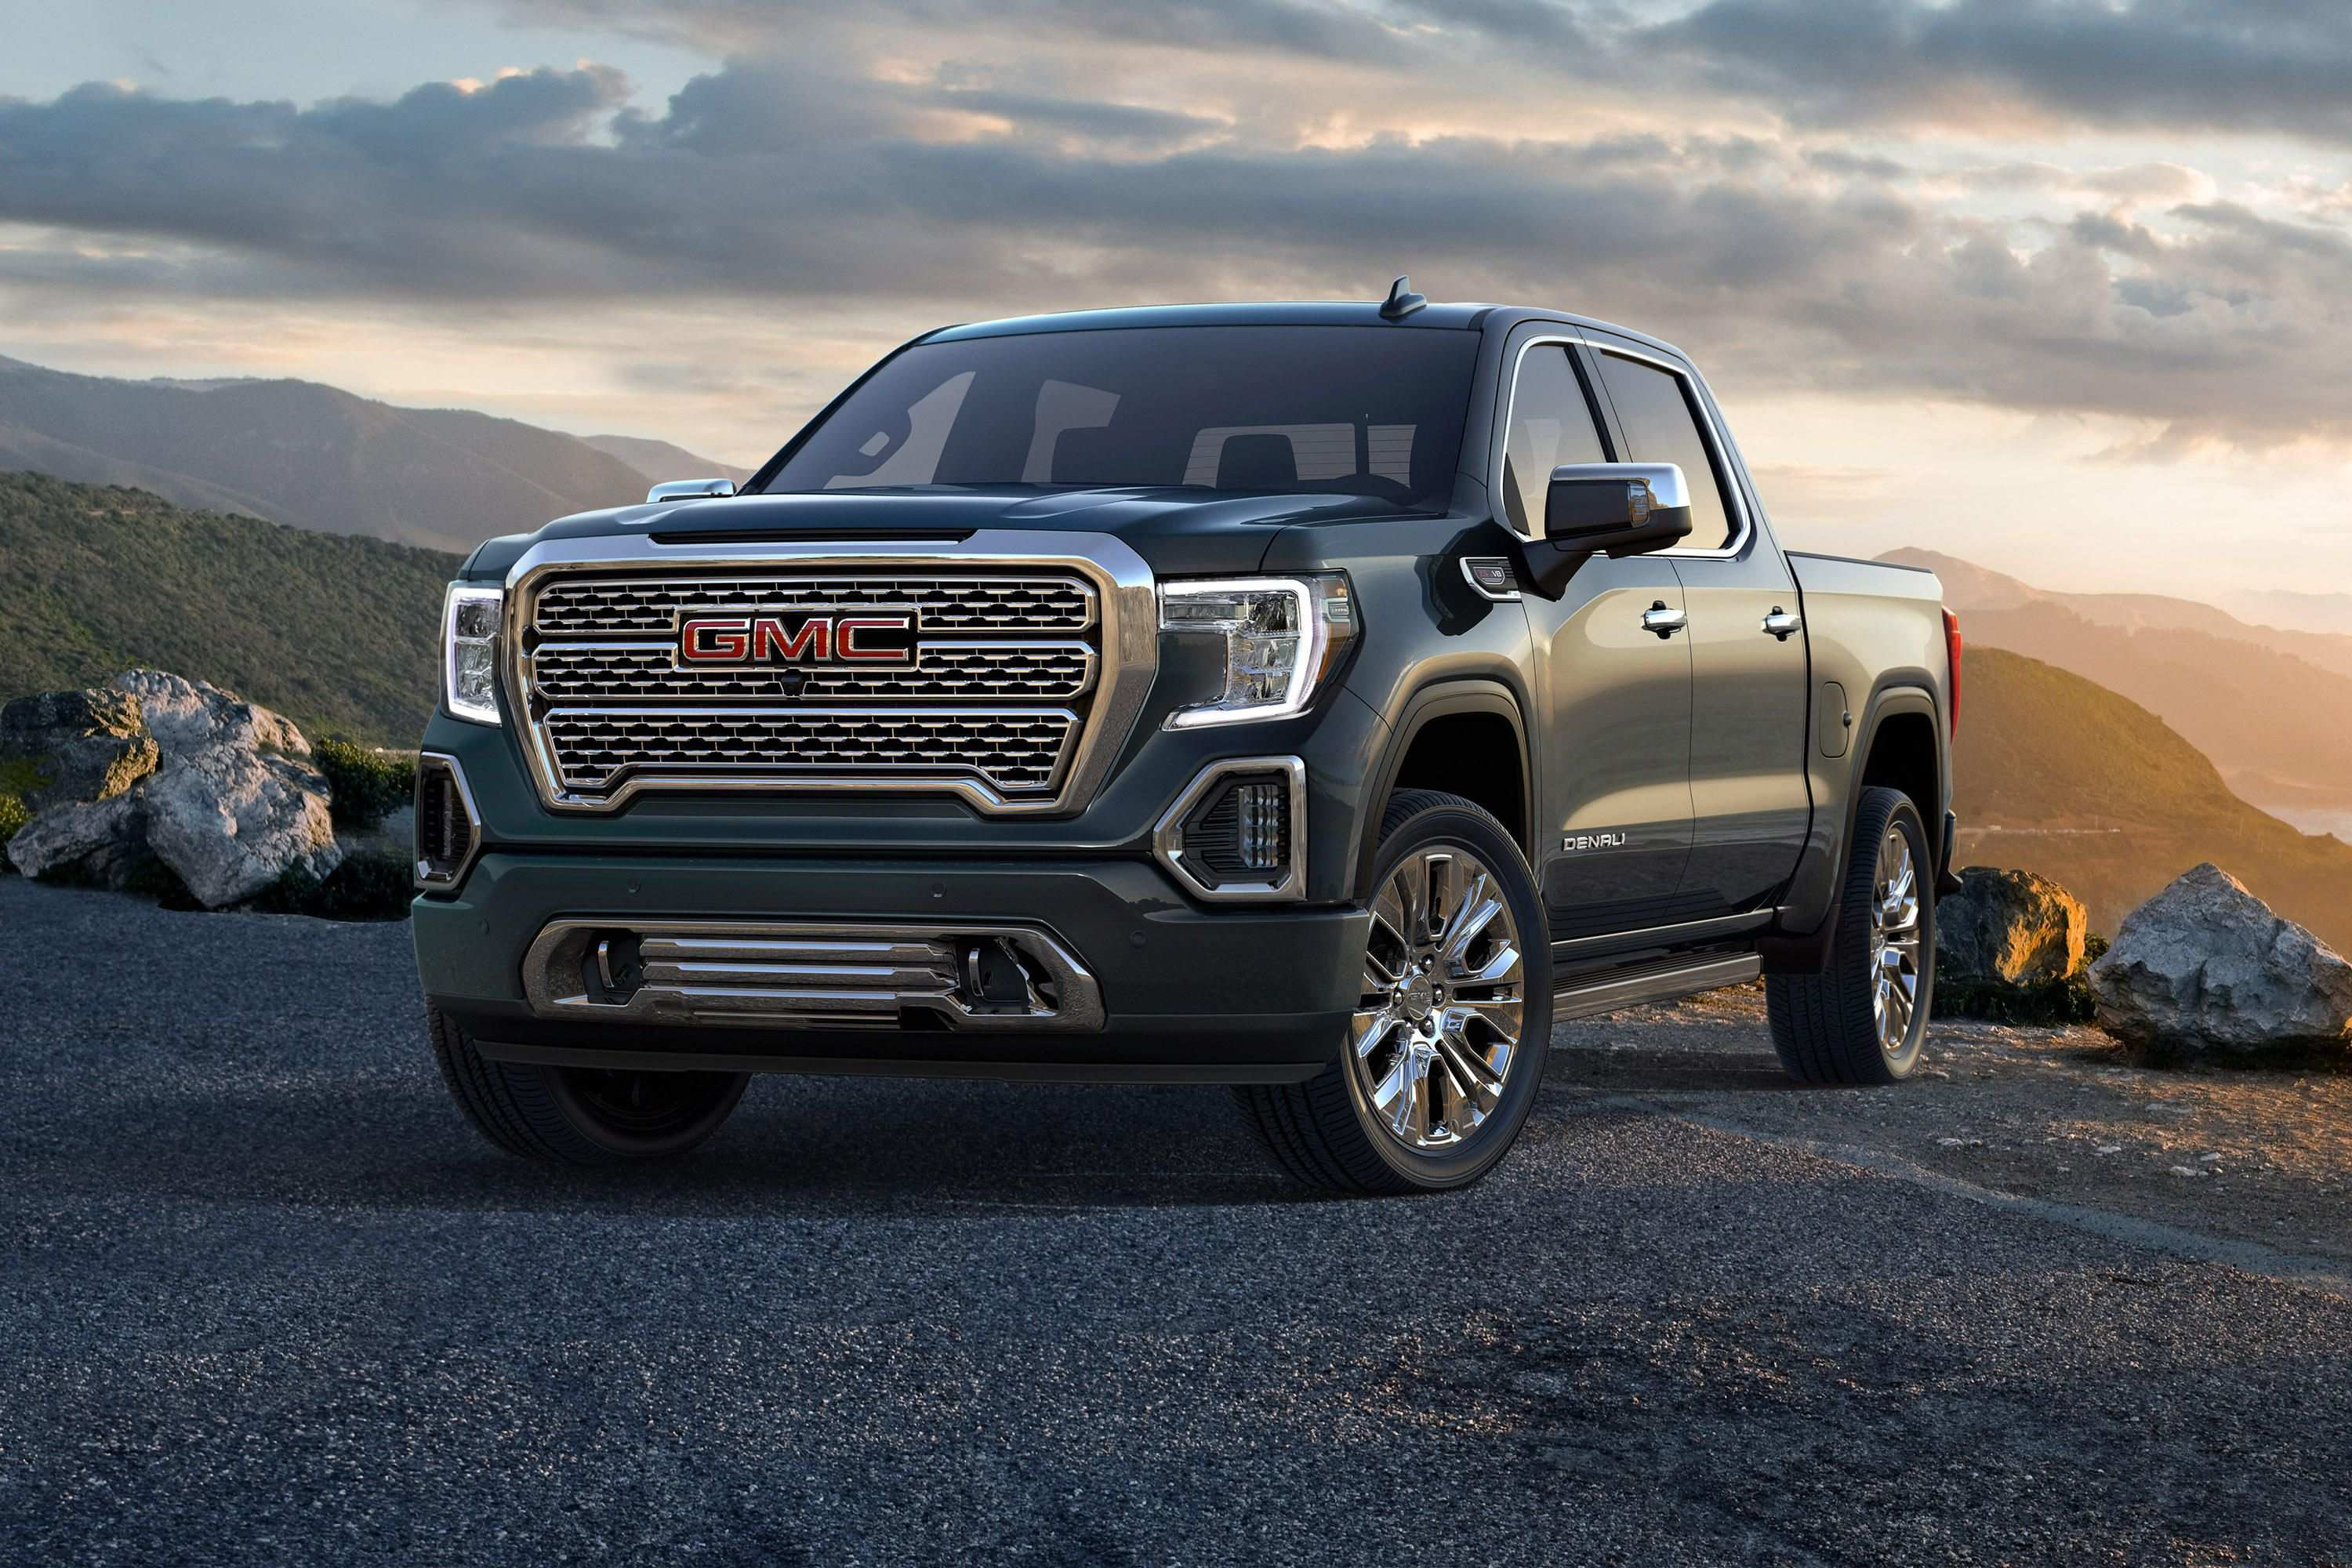 80 Gallery of 2019 Gmc 1500 Release Date Specs for 2019 Gmc 1500 Release Date